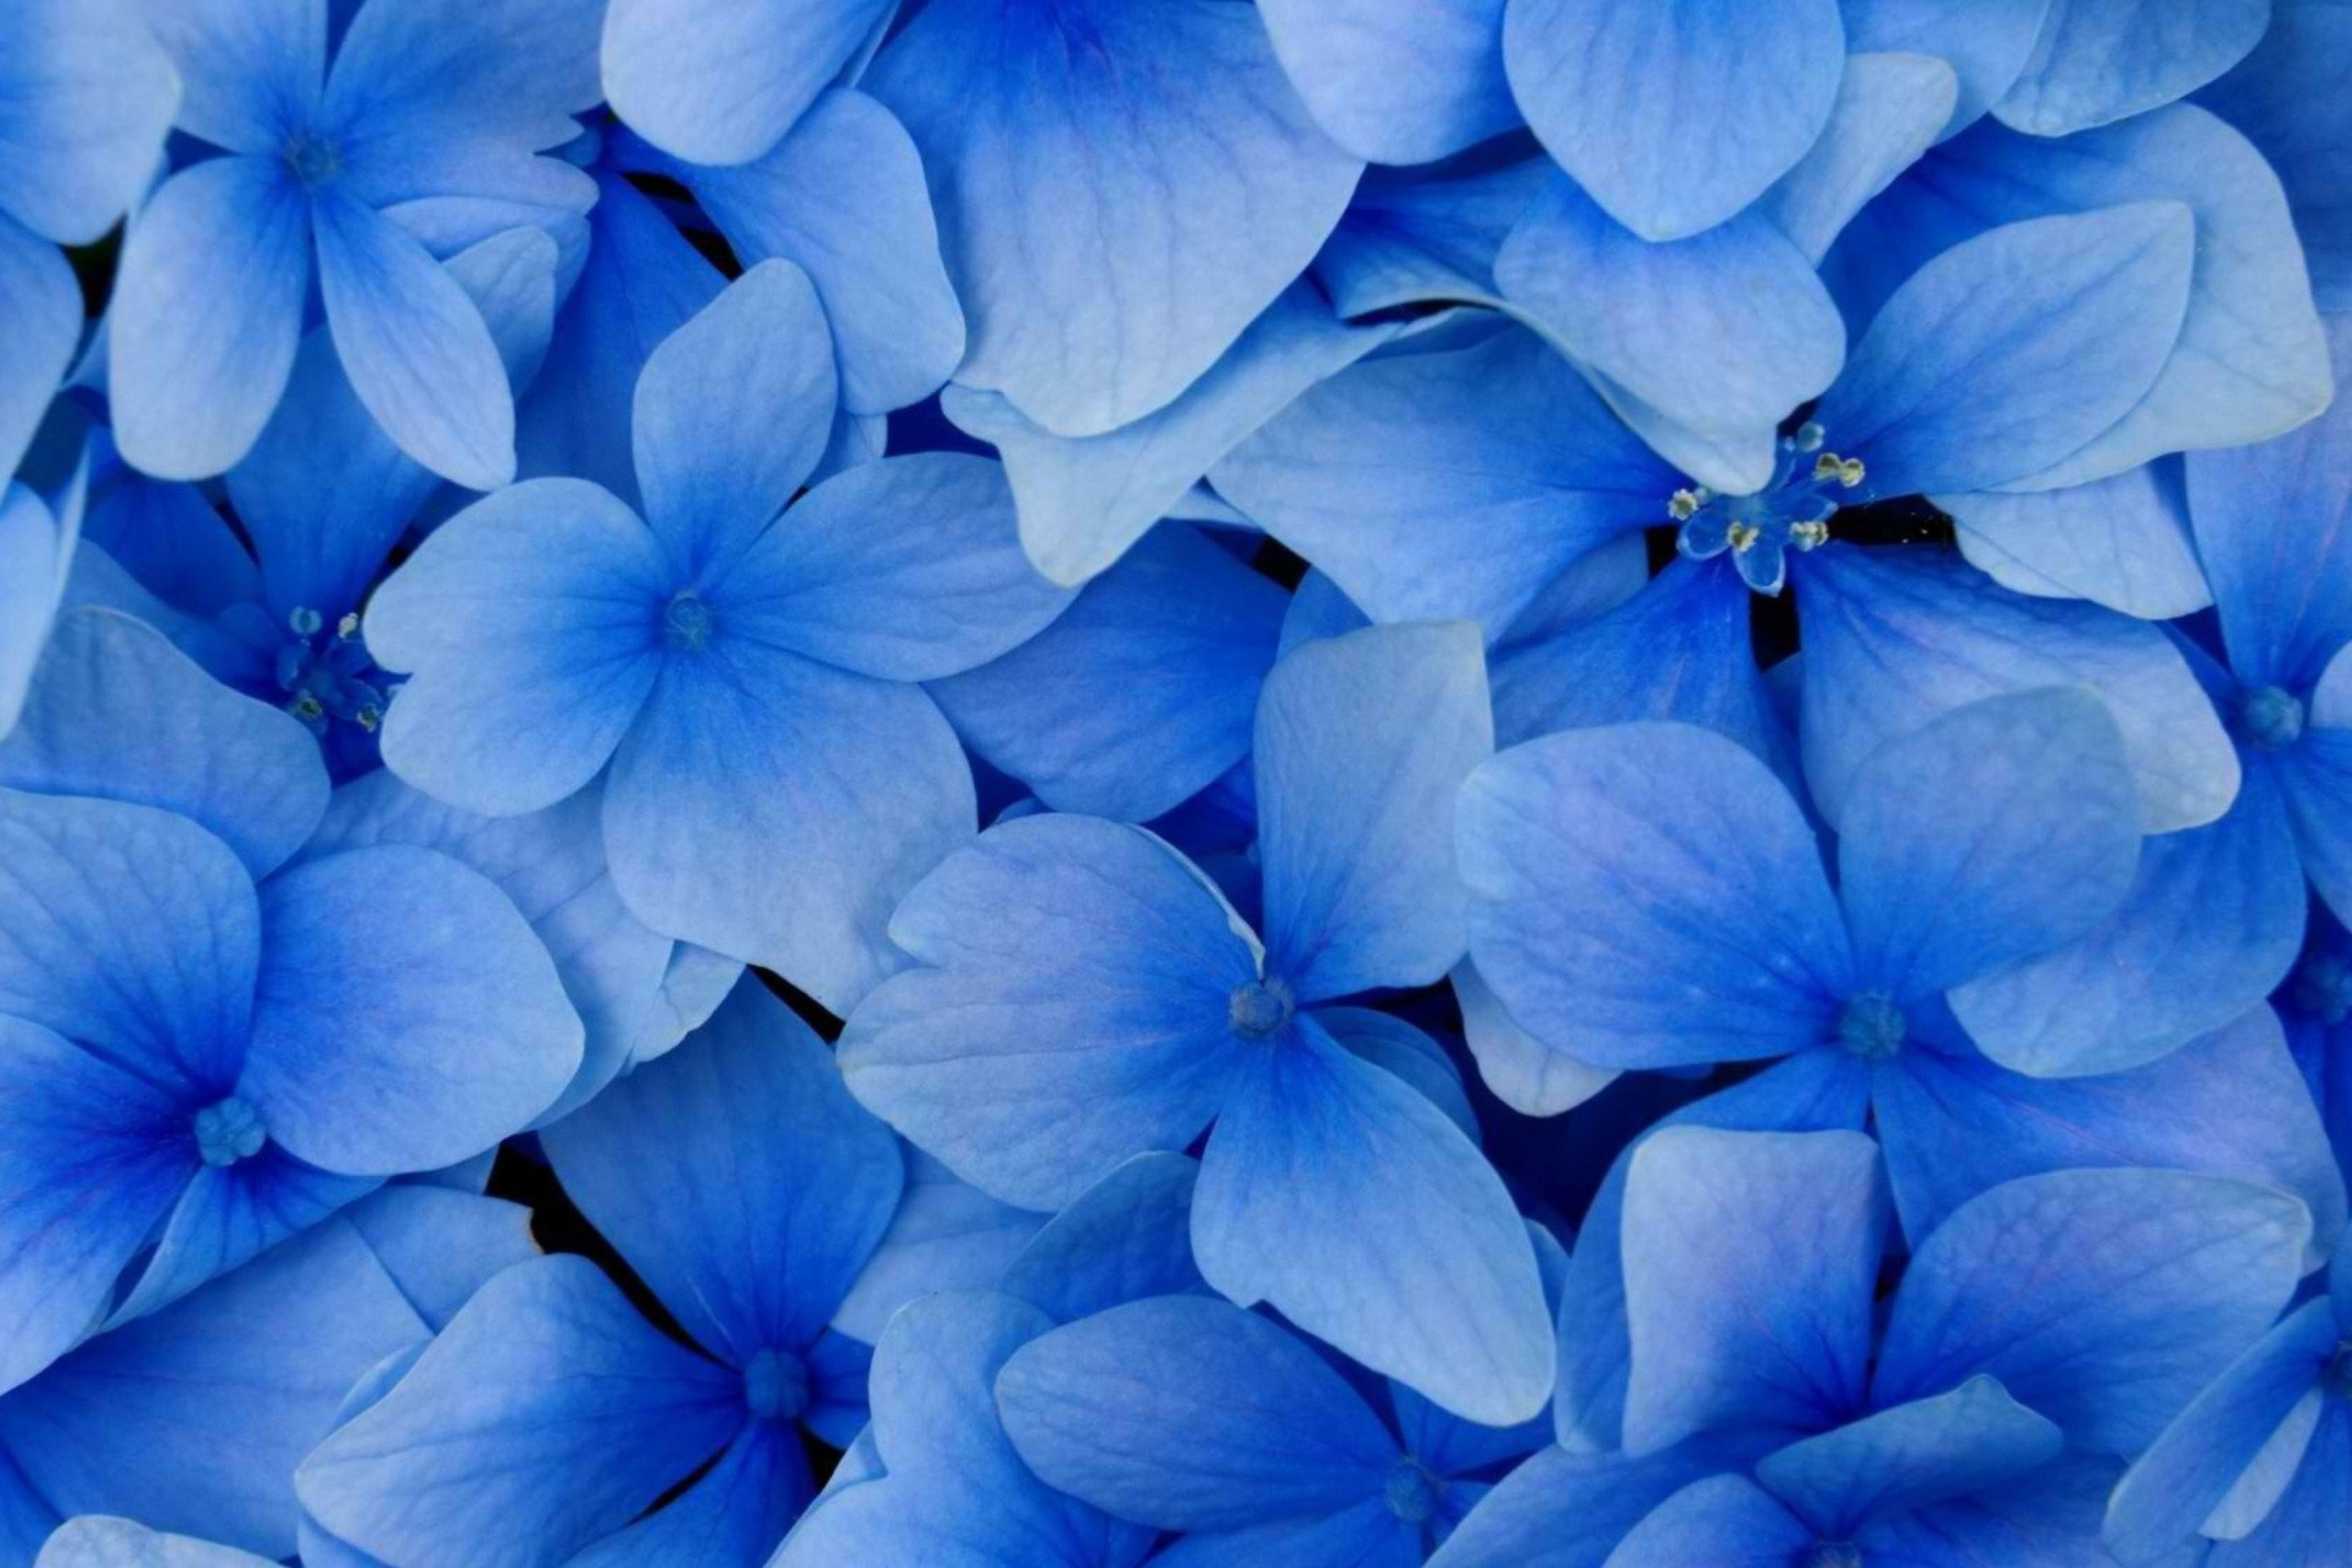 2880x1920 Flower, Blue Flower, Flowering Plant, Blue, Royal Blue Wallpaper in   Resolution